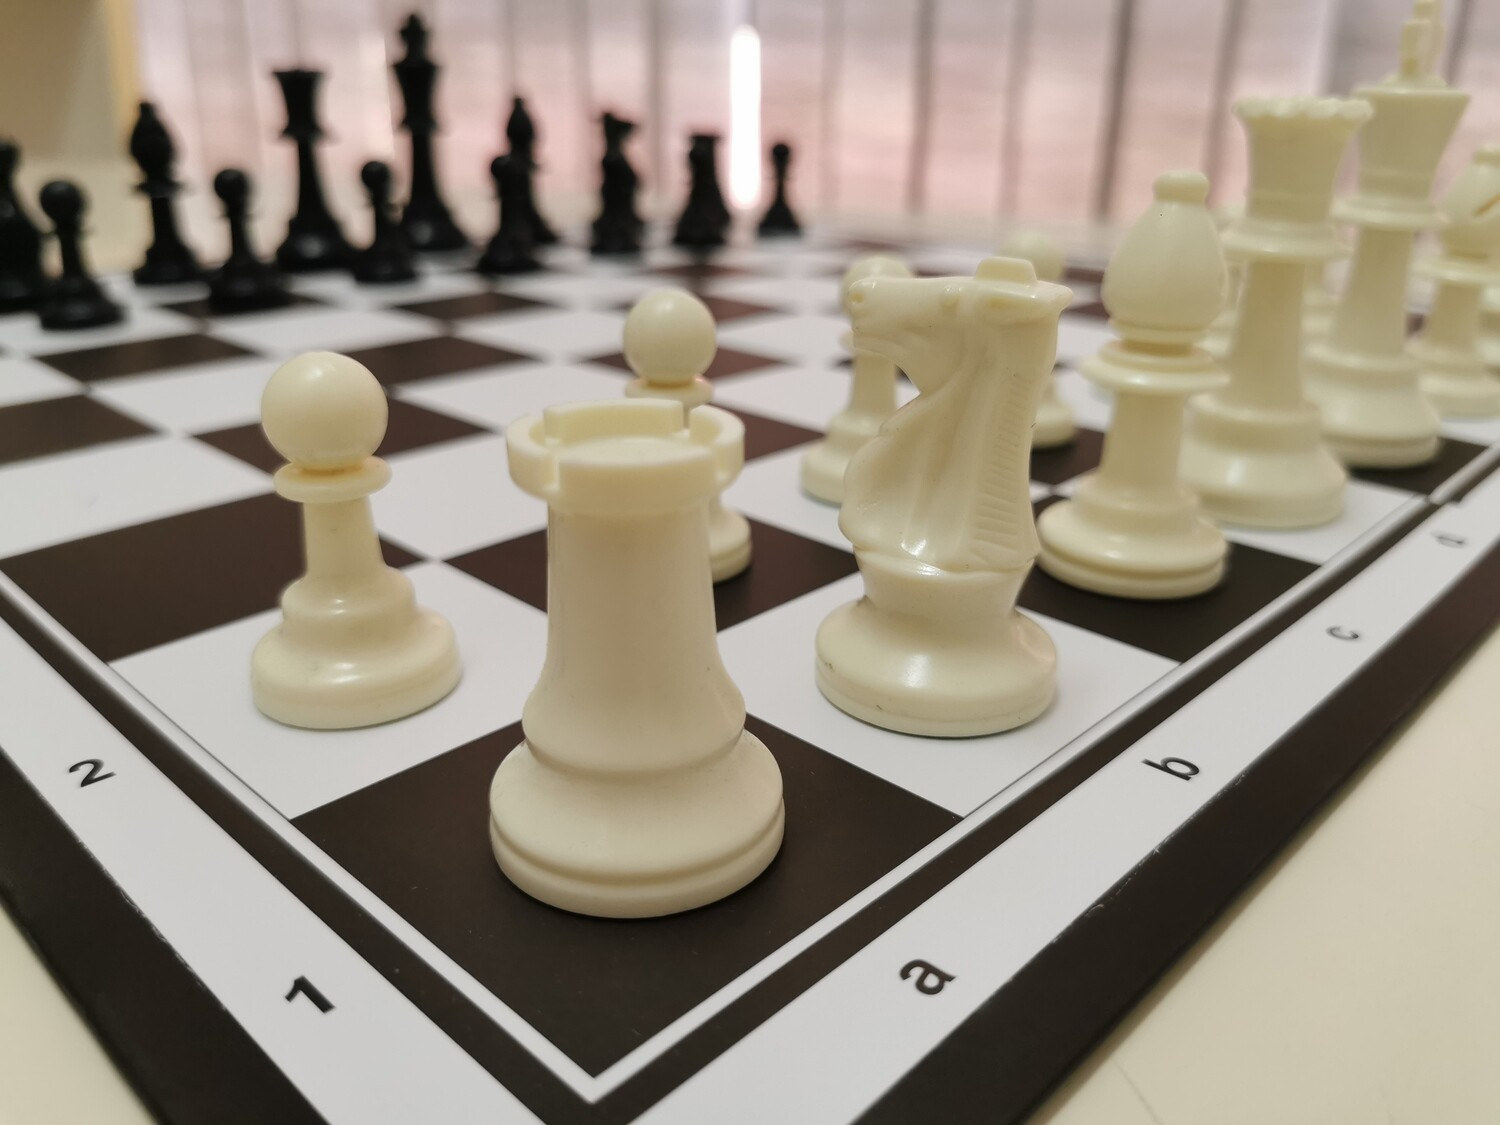 CHESS SET with foldable hard board, standard tournament size chess pieces with an extra Queen each and pouch for the pieces.